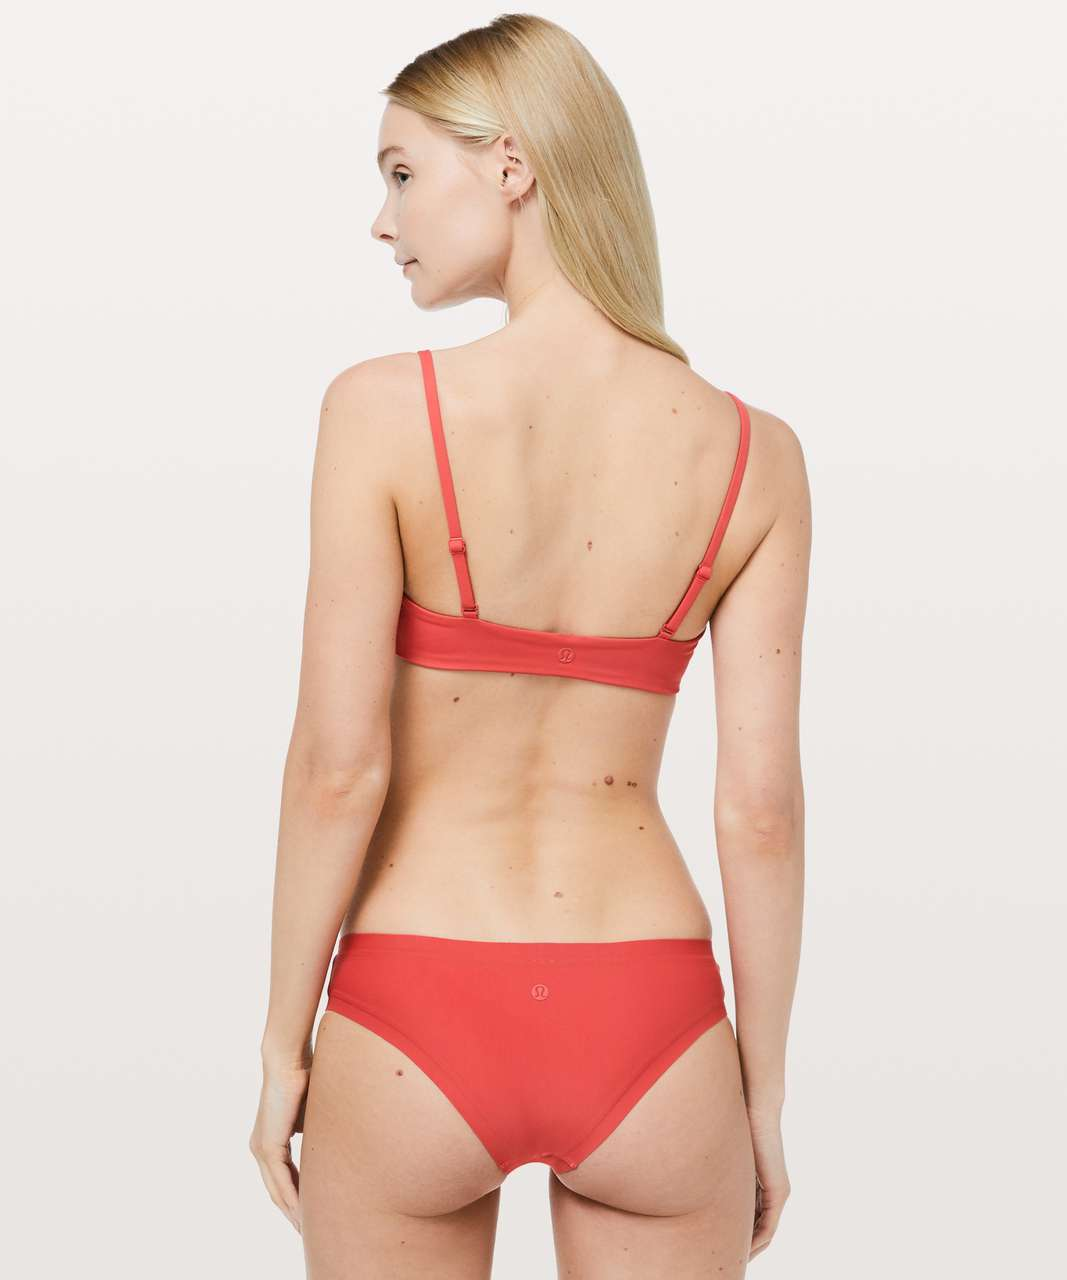 Lululemon Tied To Tide Swim Top - Poppy Coral